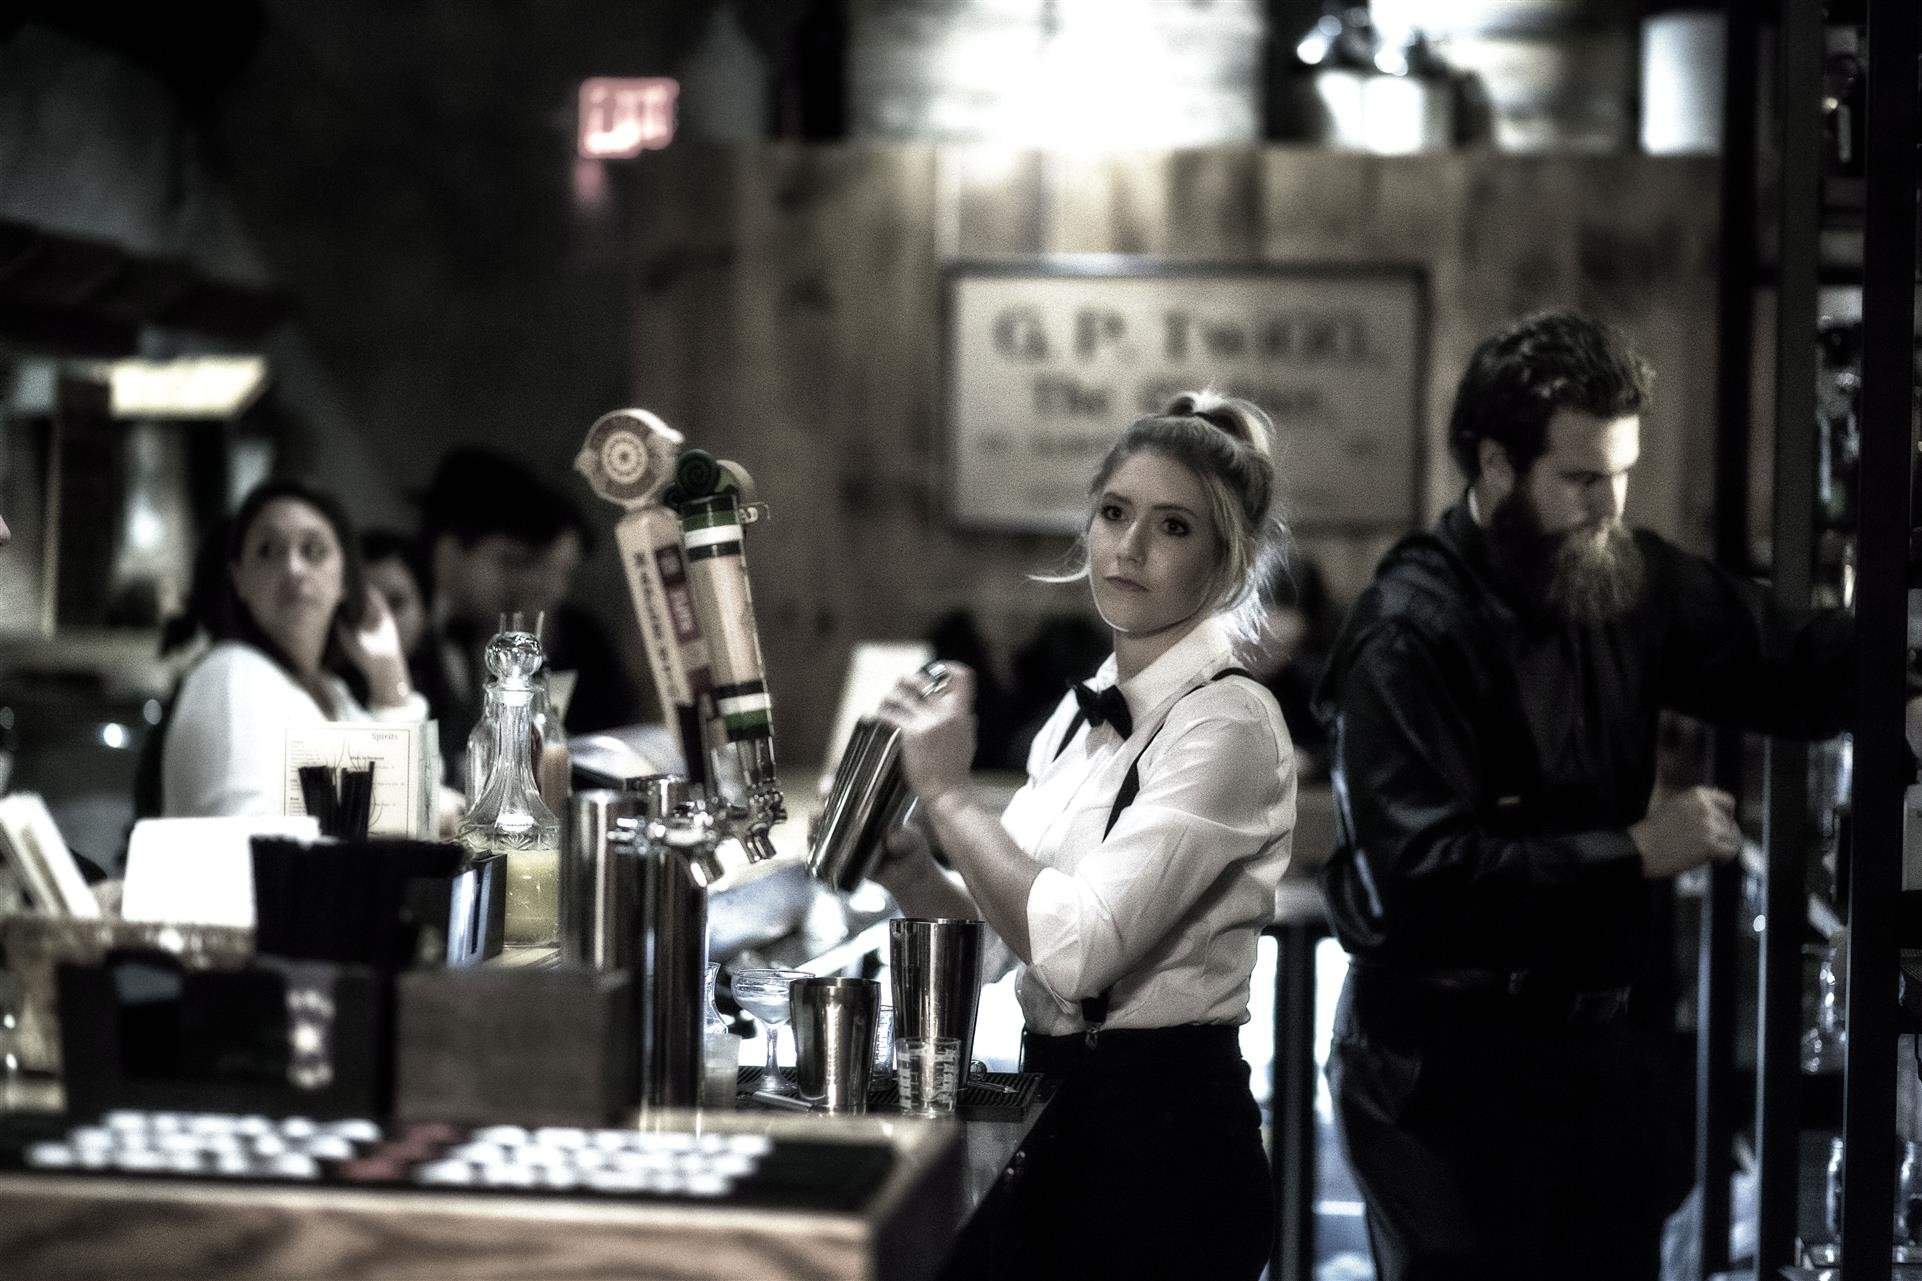 a bartender with a bowtie and suspenders